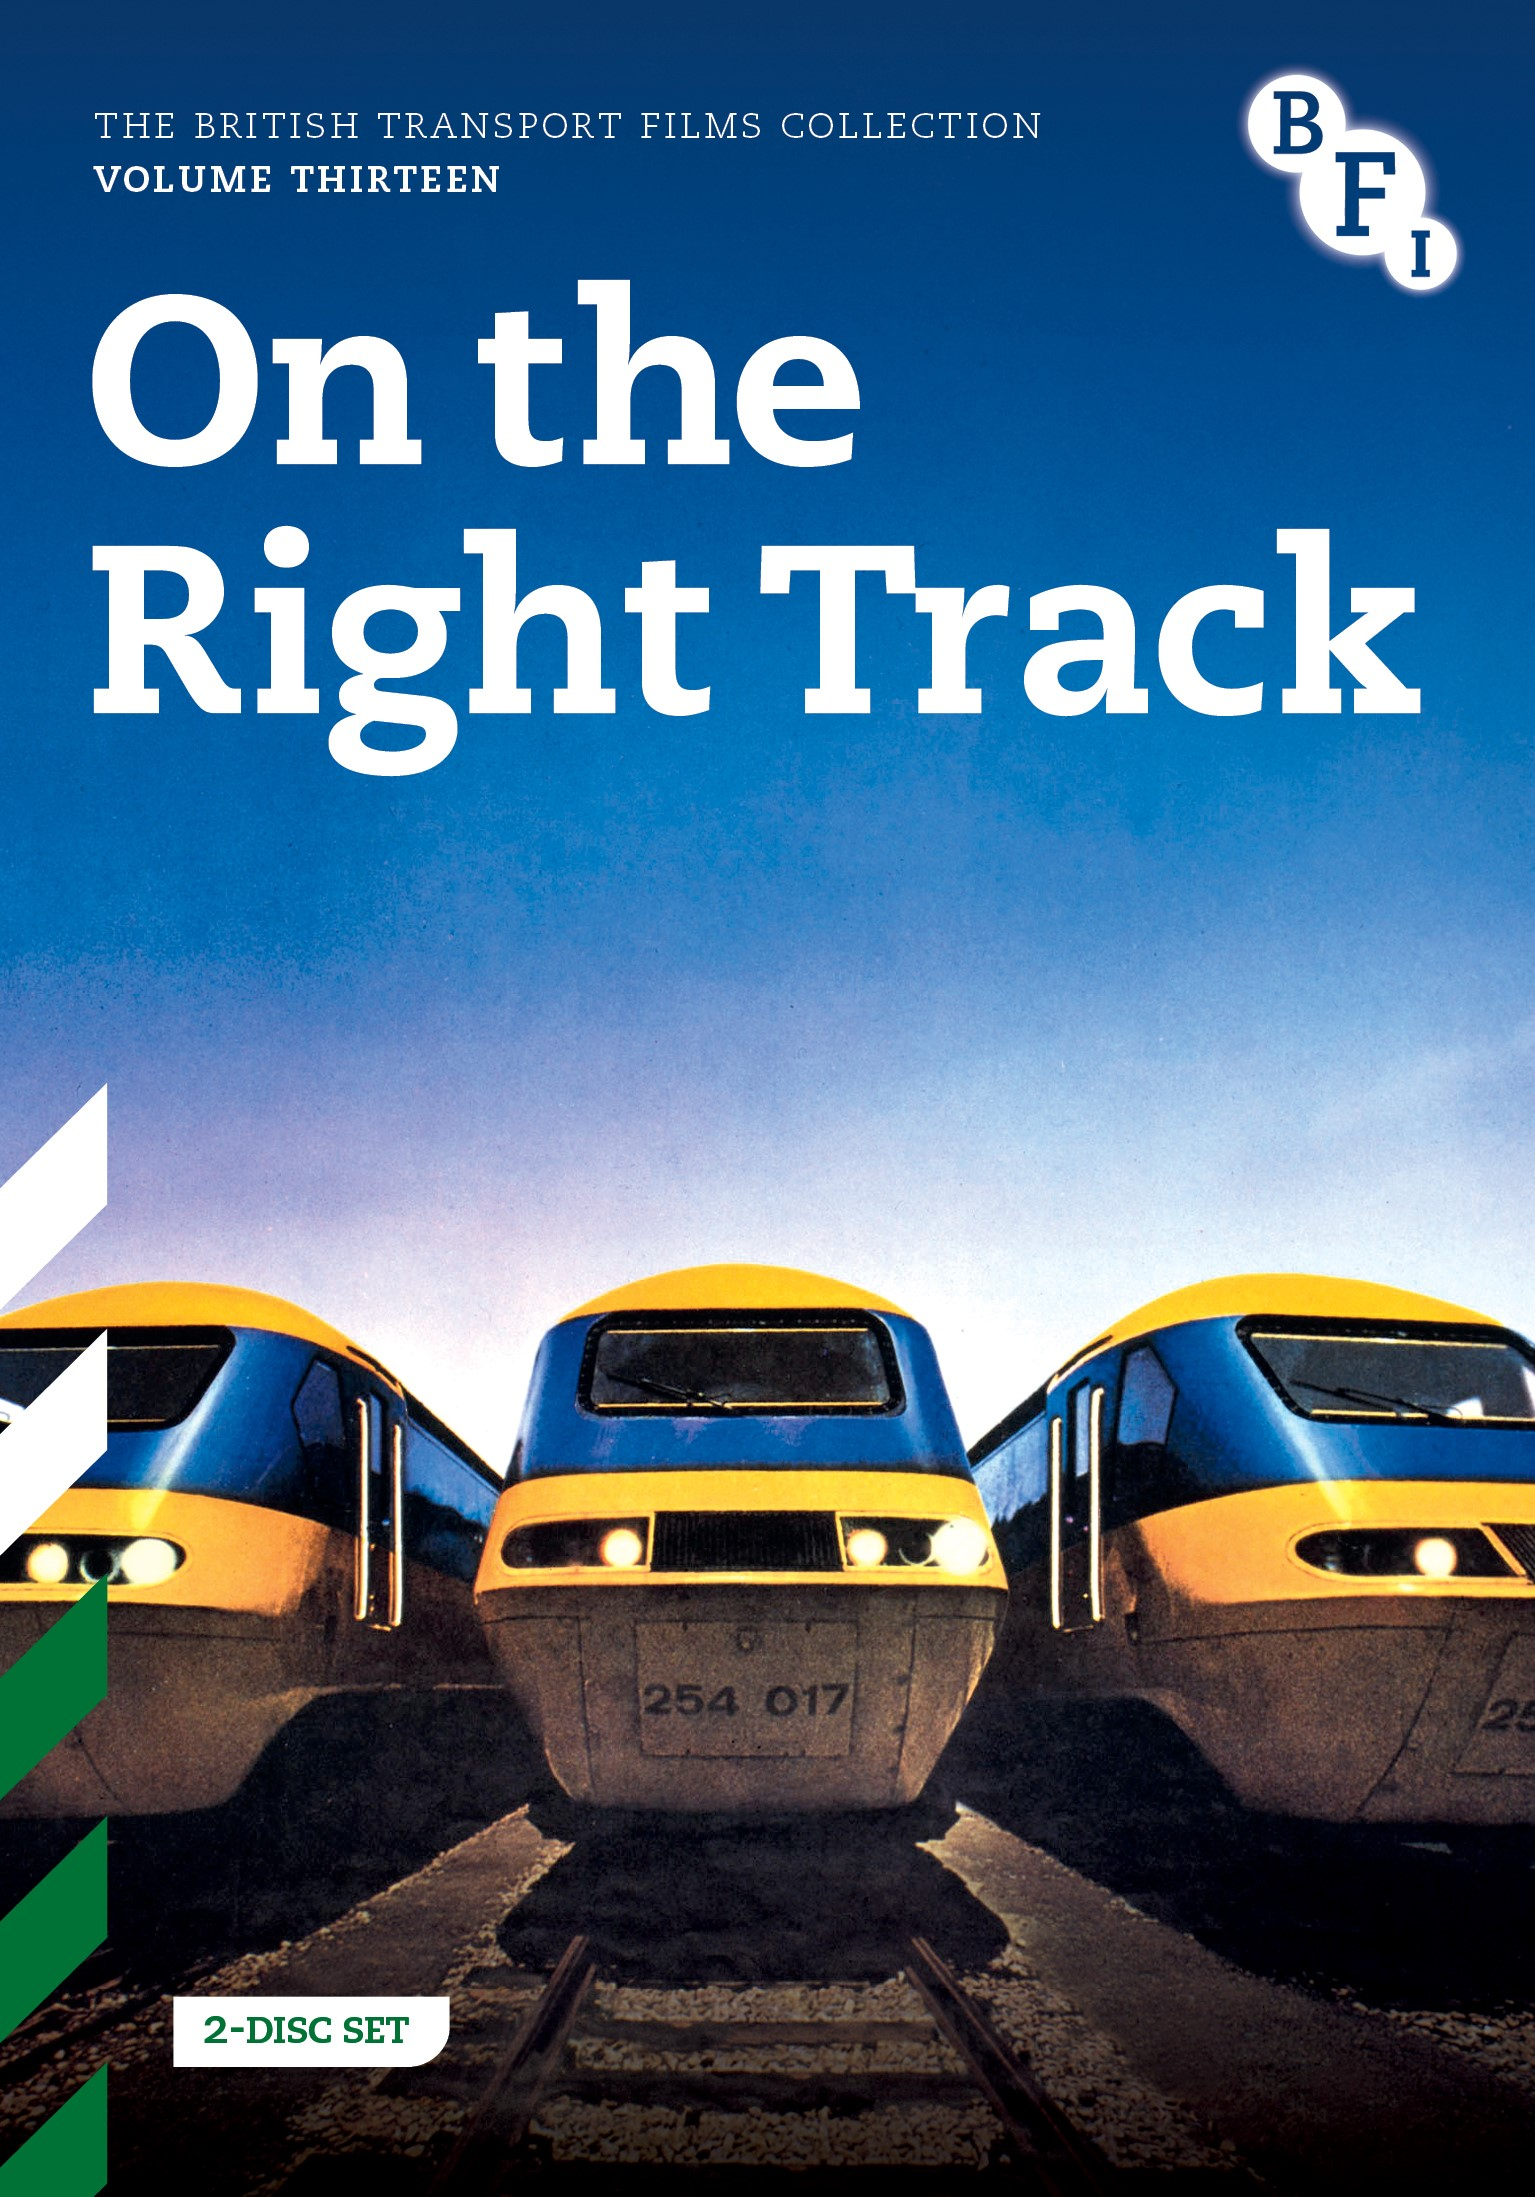 Buy British Transport Films Volume Thirteen: On the Right Track (2-DVD set)